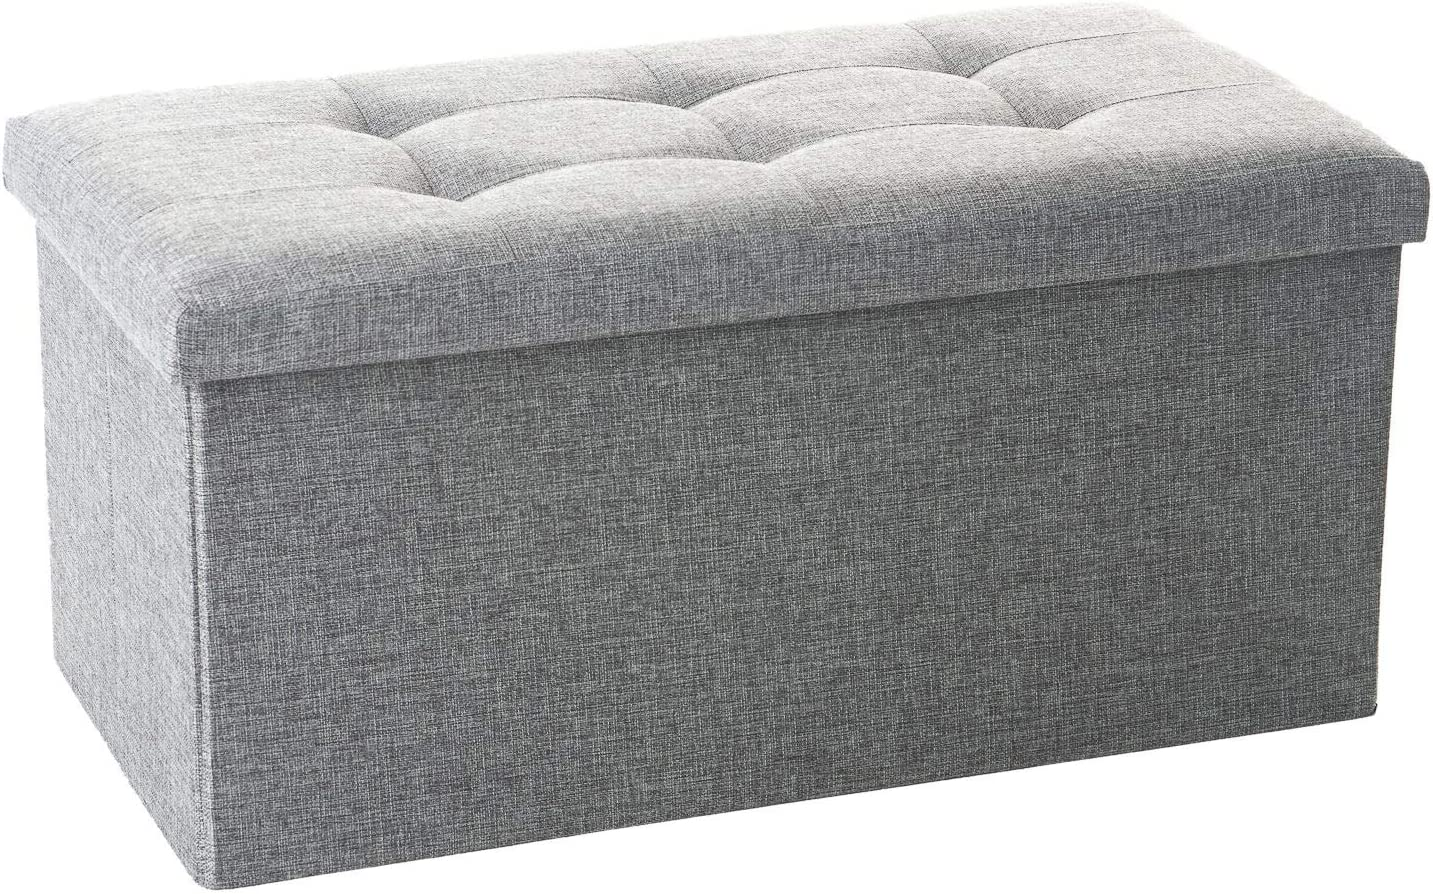 home treats folding ottoman storage box fabric ottoman chest and footstool ideal for toy box bed end shoe bench hallway seating grey medium